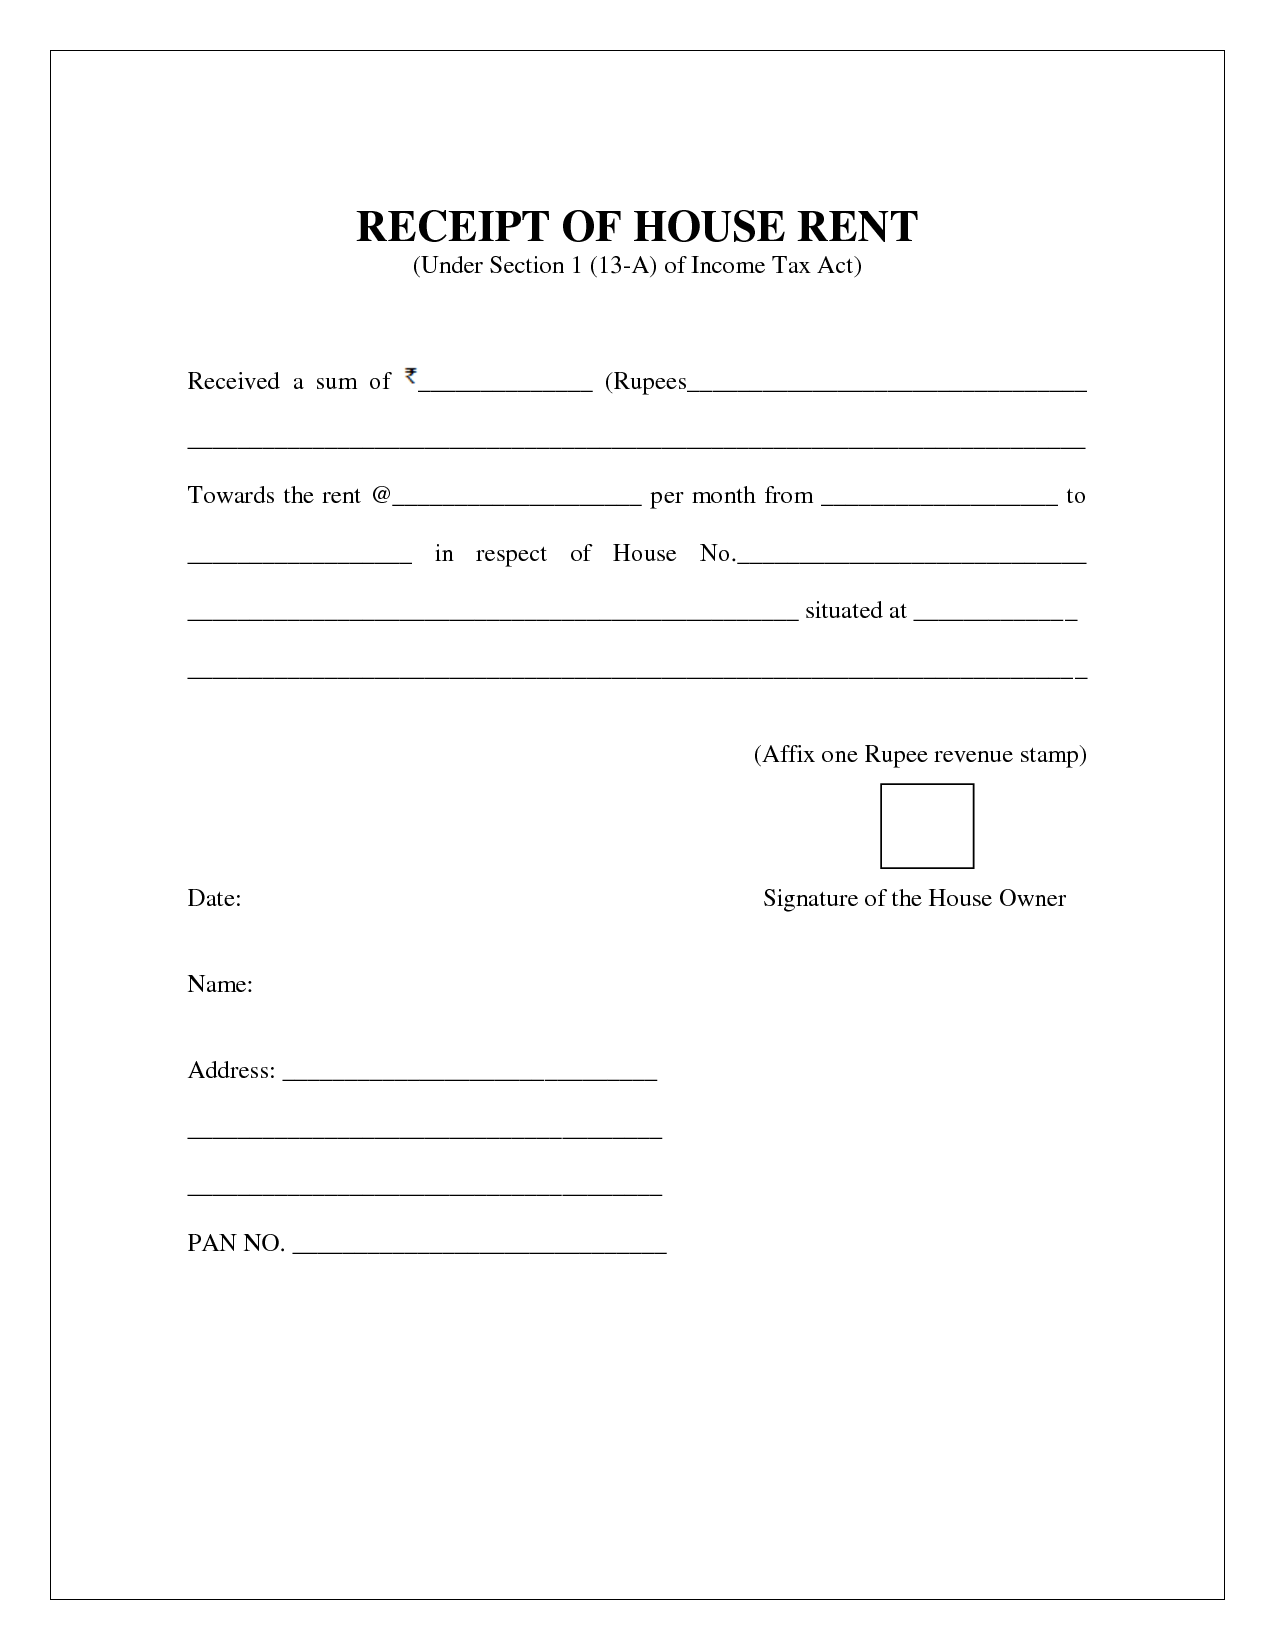 Rental Receipt Template graph paper template – Rent Receipt Template Doc